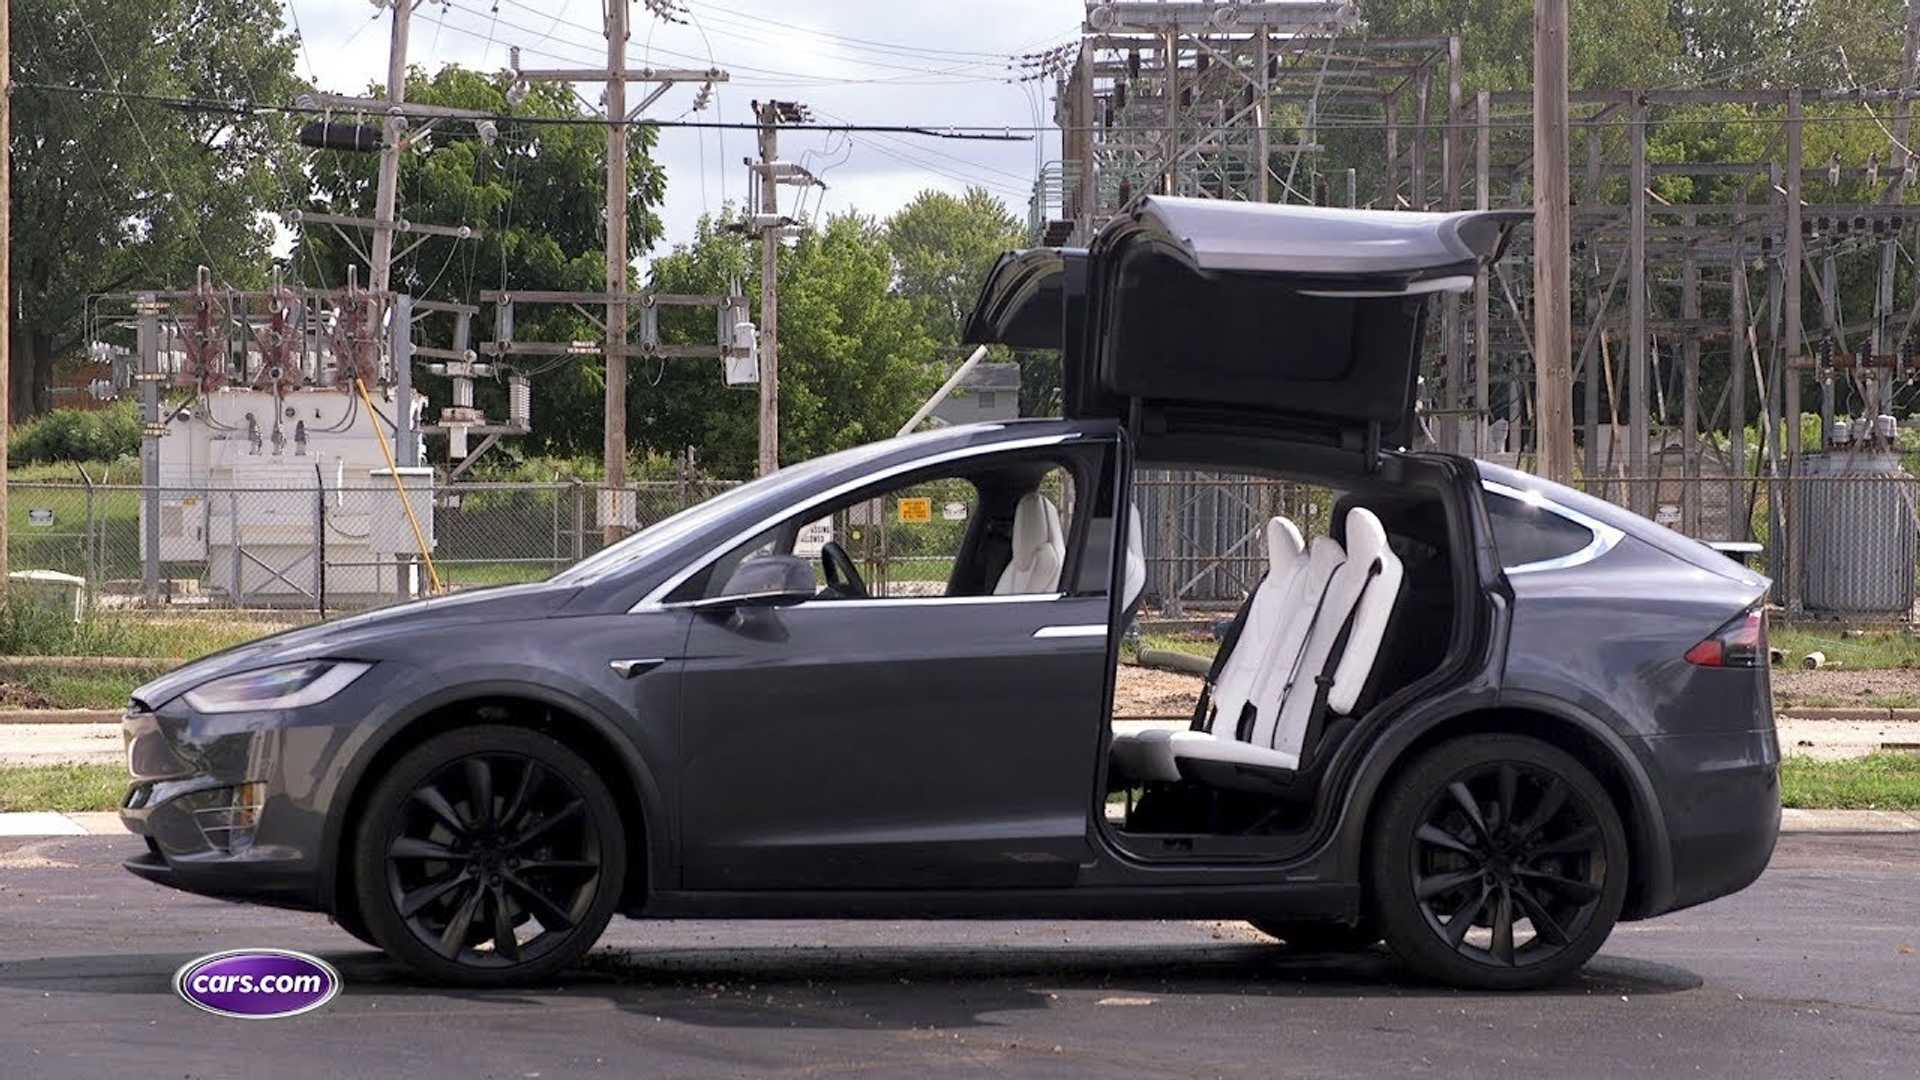 Cars Com Spends A Week With A Tesla Model X